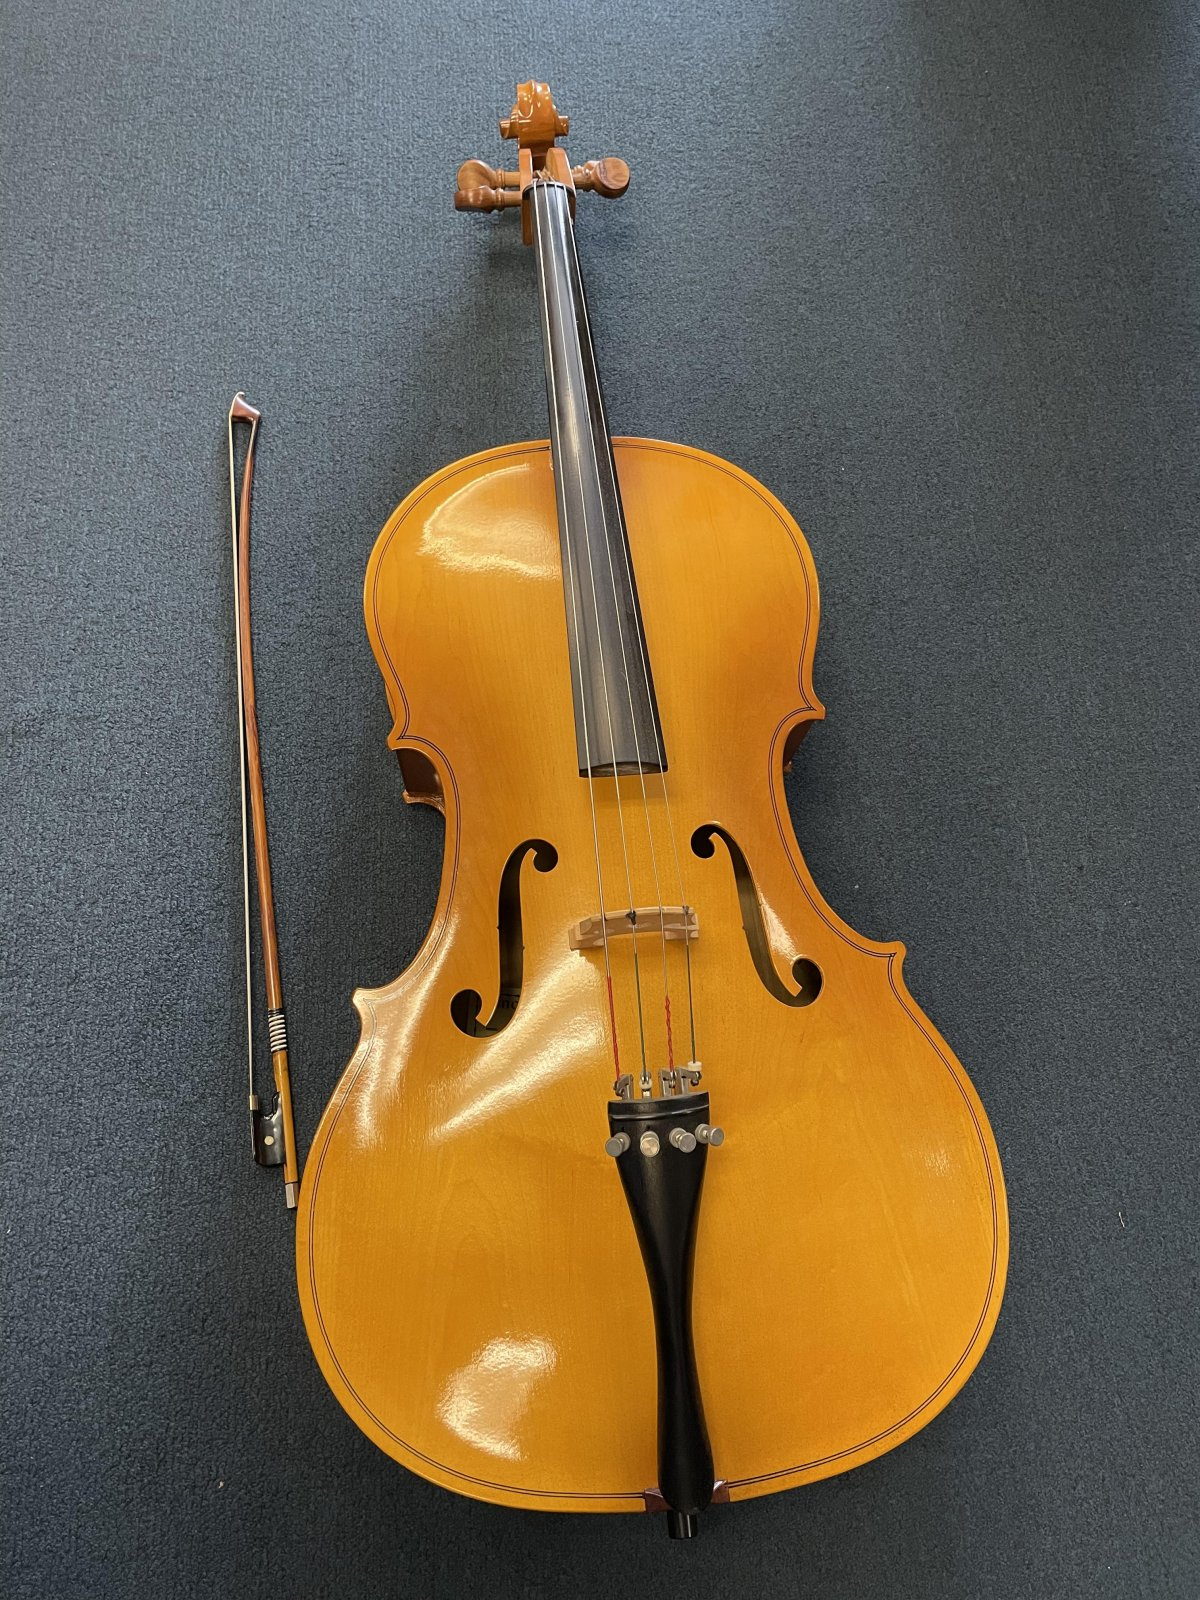 Engelhardt 4/4 Cello outfit used-(consignment)